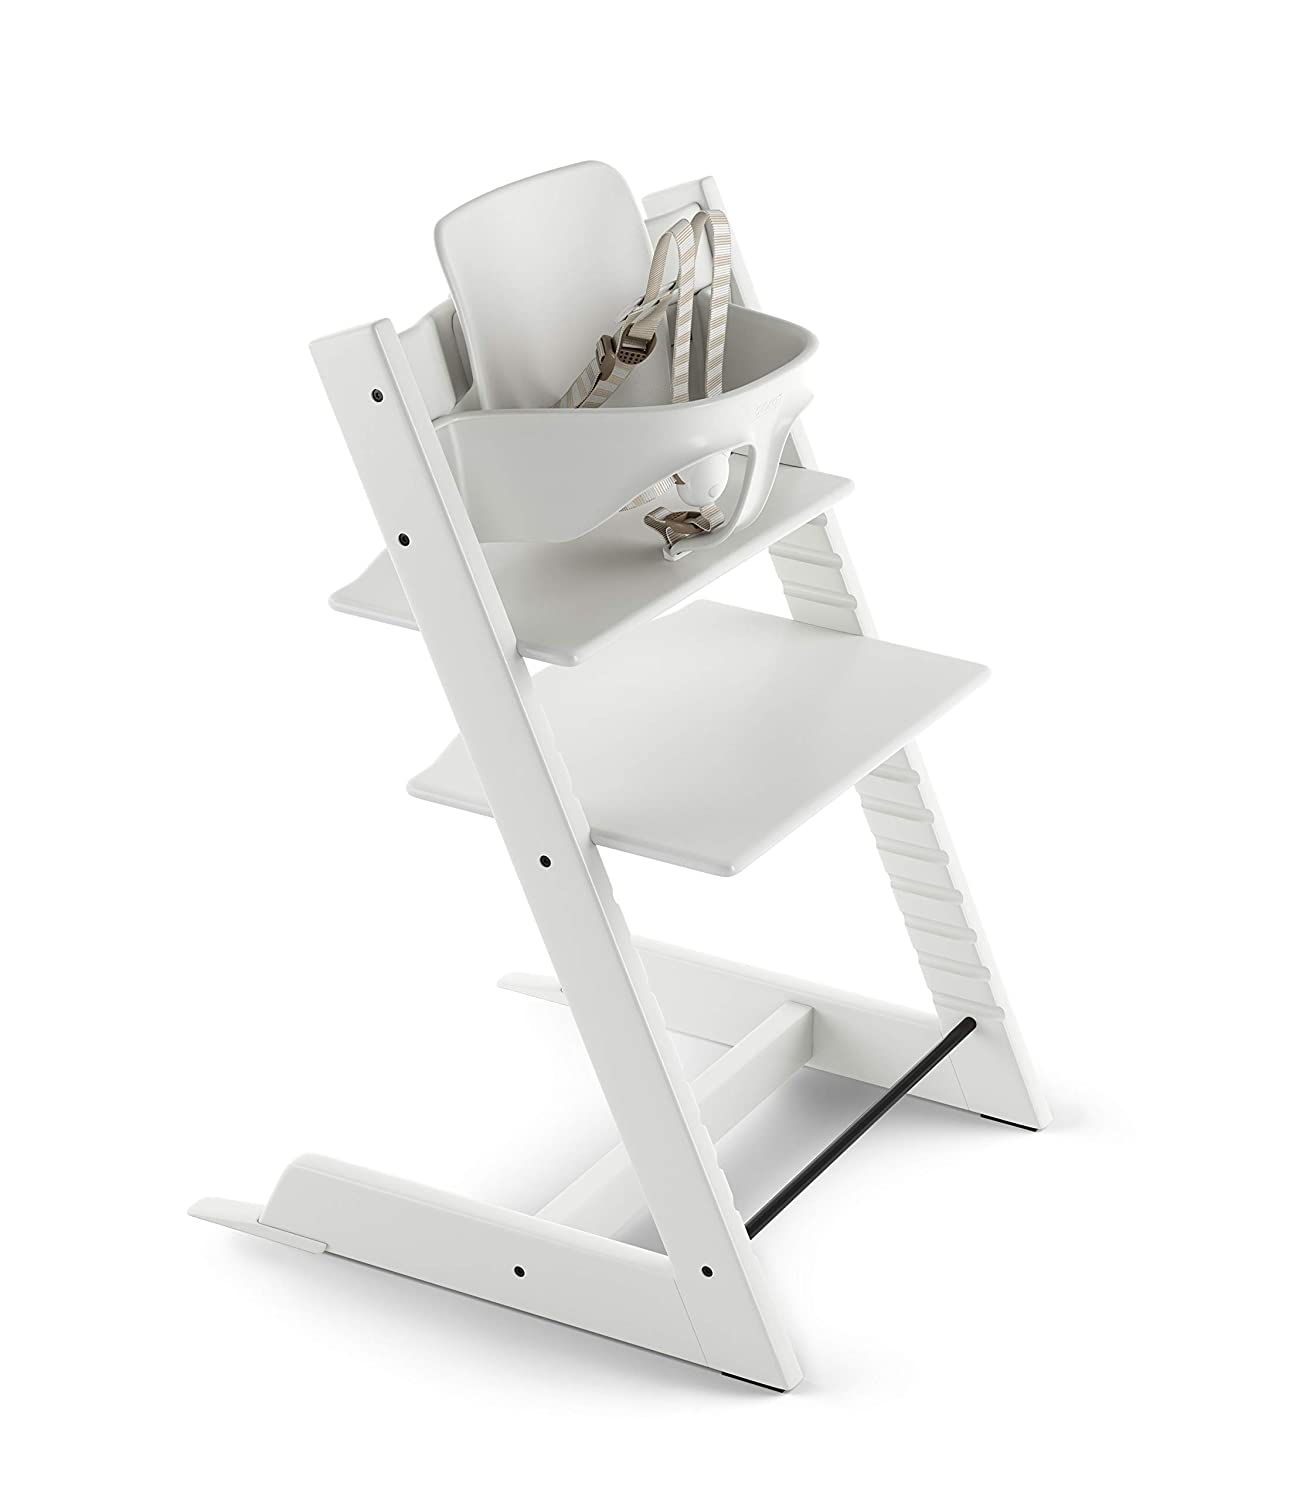 B001D150W8 Tripp Trapp by Stokke Adjustable White Baby High Chair (Includes Baby Seat with Harness) 71QM27KaMUL